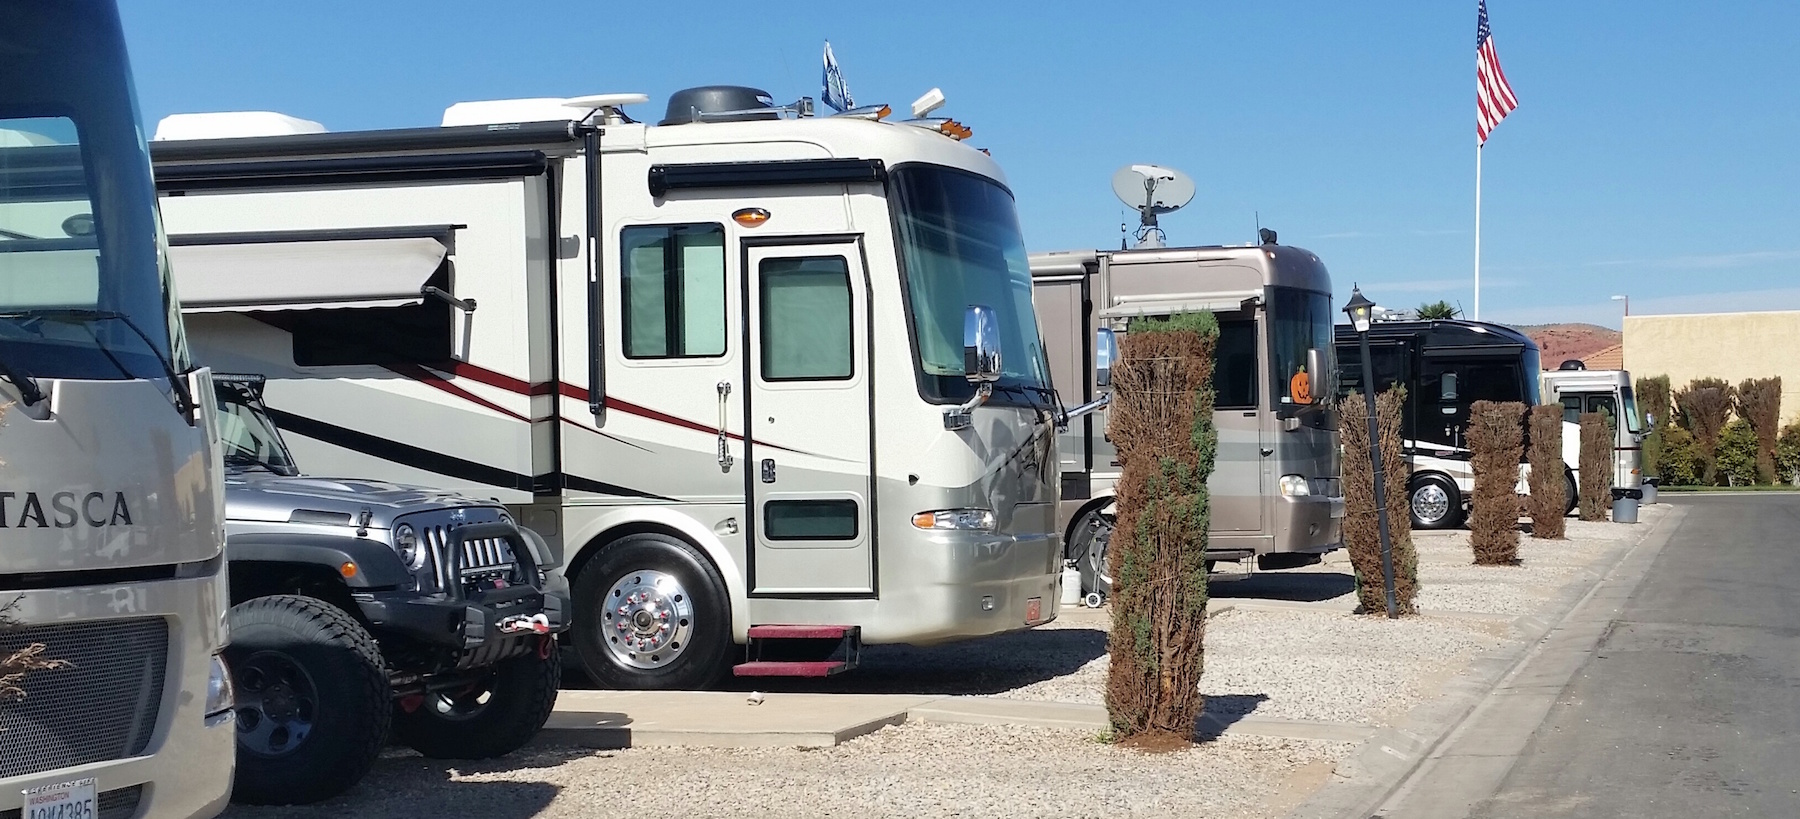 Craigslist Four Wheelers For Sale By Owner >> Recreational Vehicles St George News | Autos Post